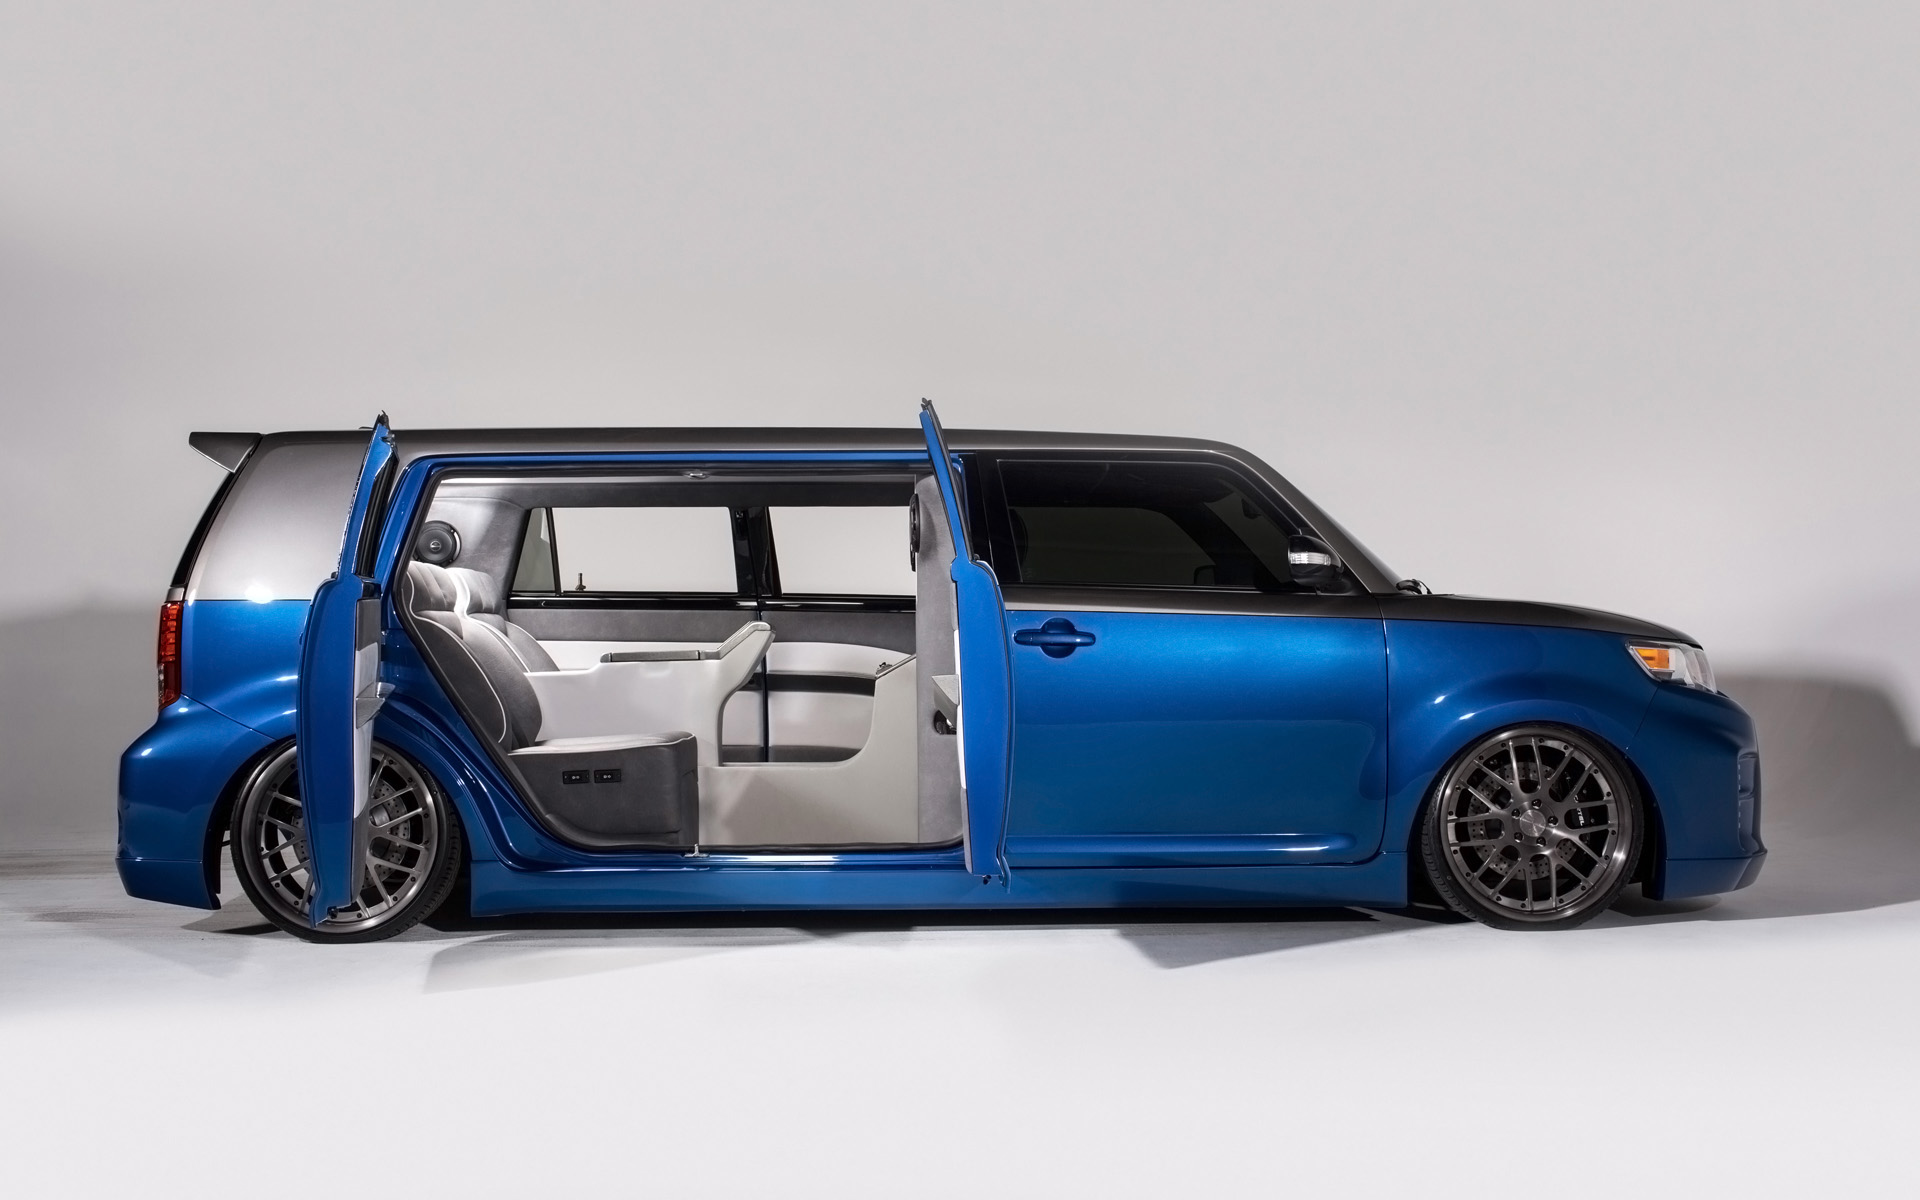 2013 cartel customs scion xb van suv tuning x b interior f wallpaper 1920x1200 221458. Black Bedroom Furniture Sets. Home Design Ideas